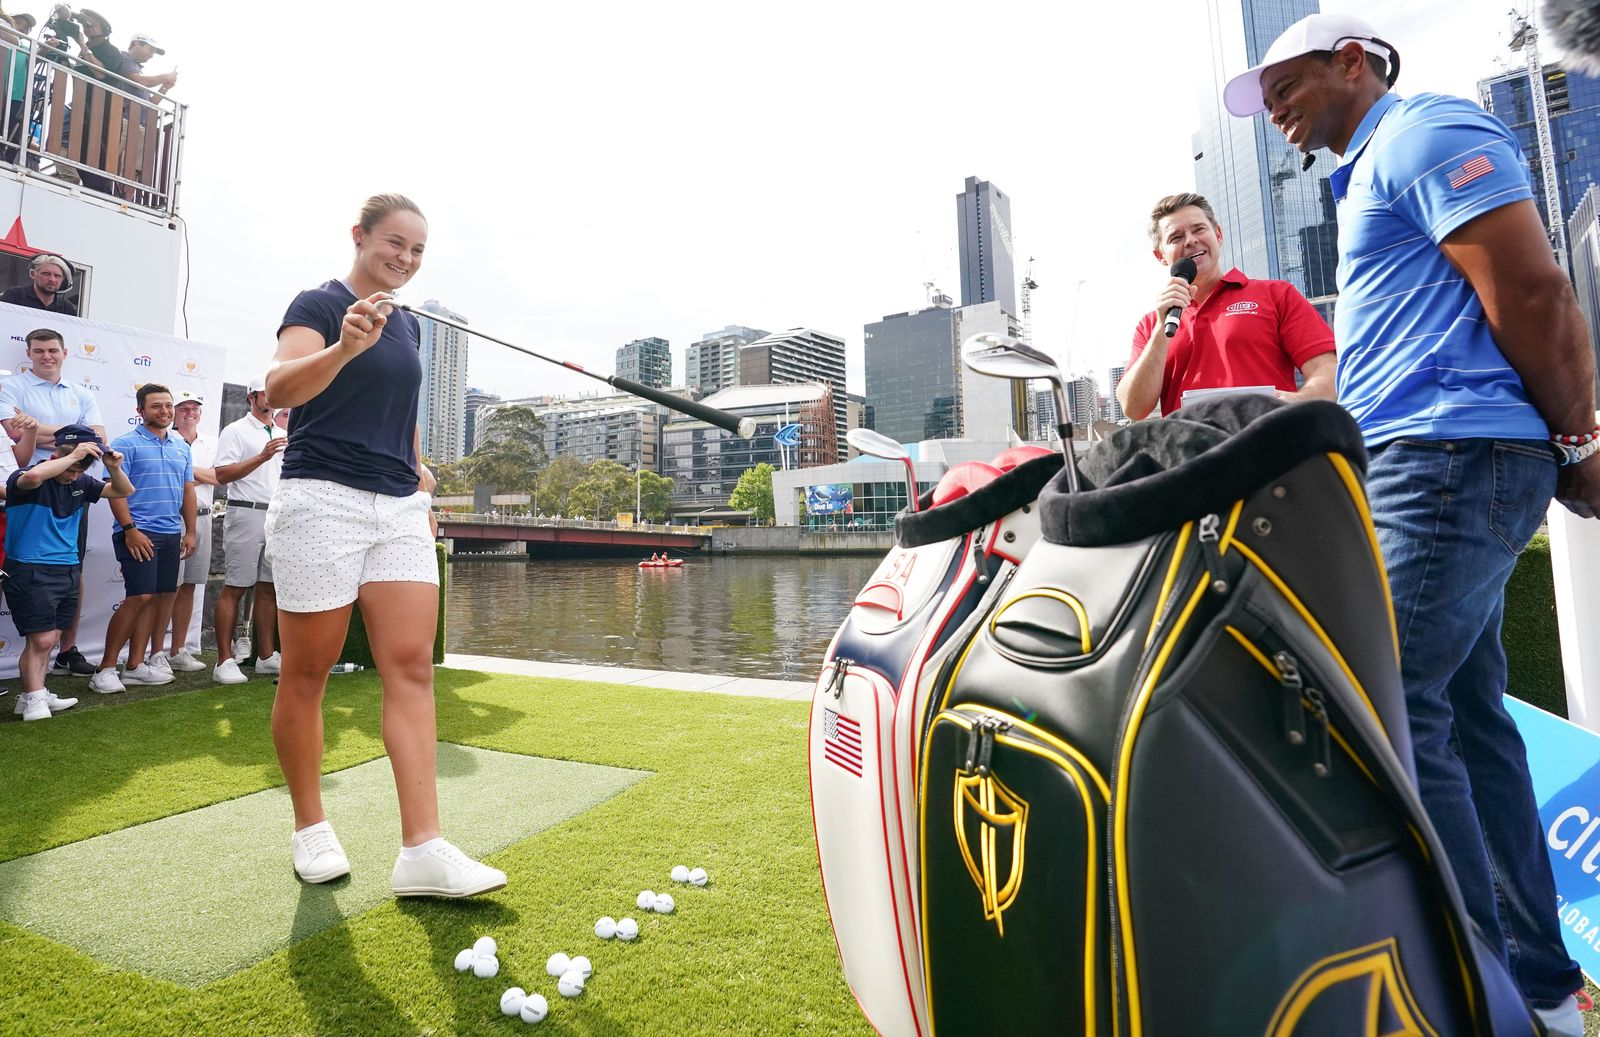 GOLF PRESIDENTS CUP, Ashleigh Barty prepares to play a golf shot as U.S. team Tiger Woods looks on during the Official O